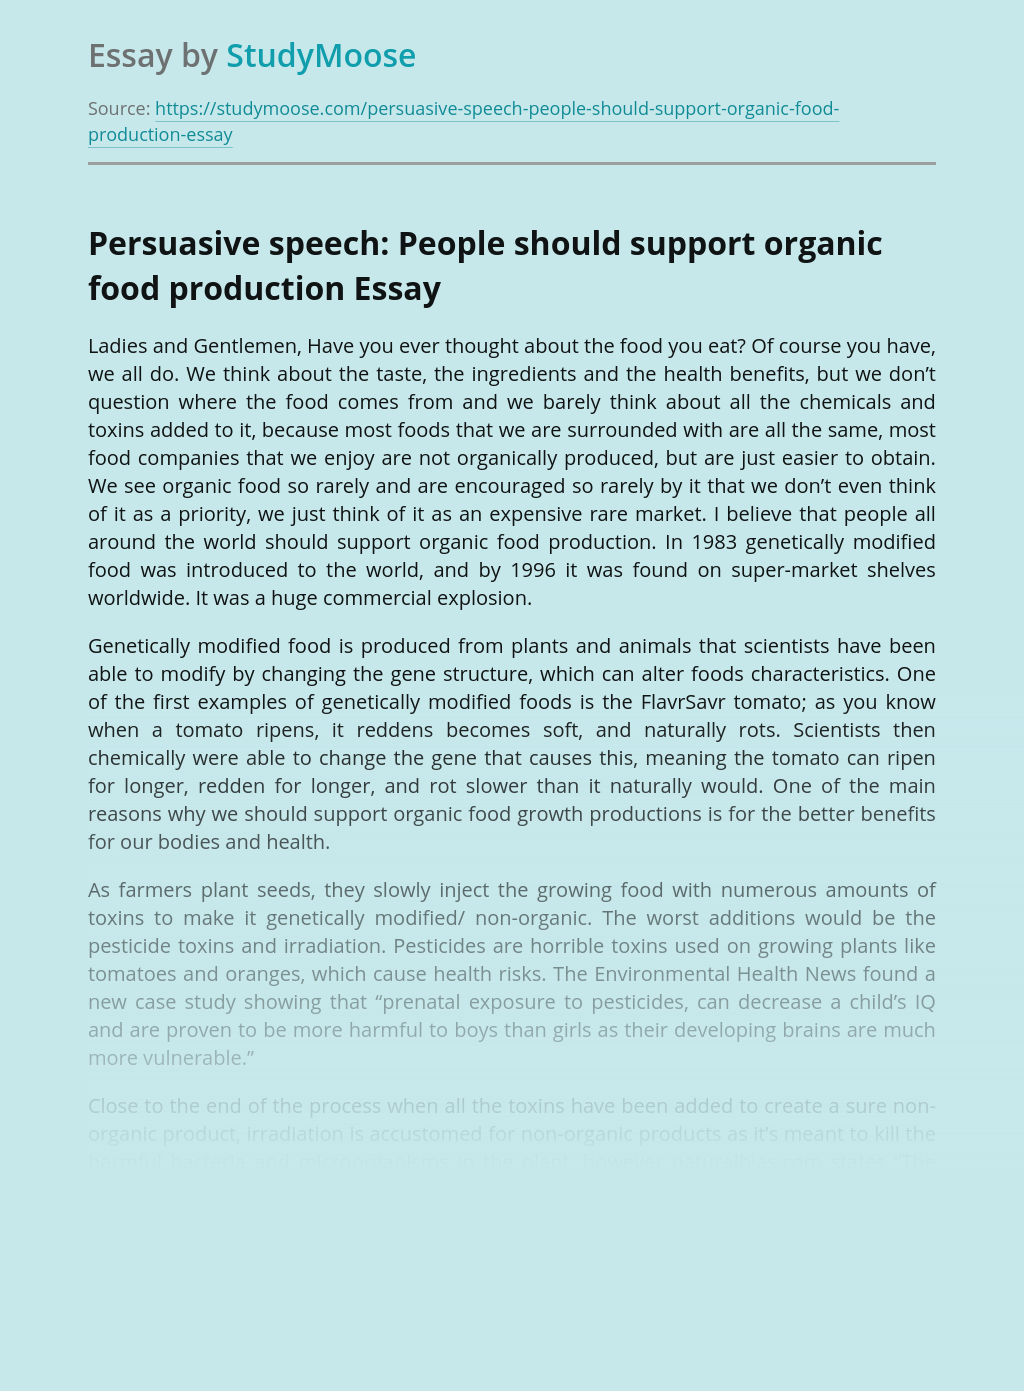 Persuasive speech: People should support organic food production